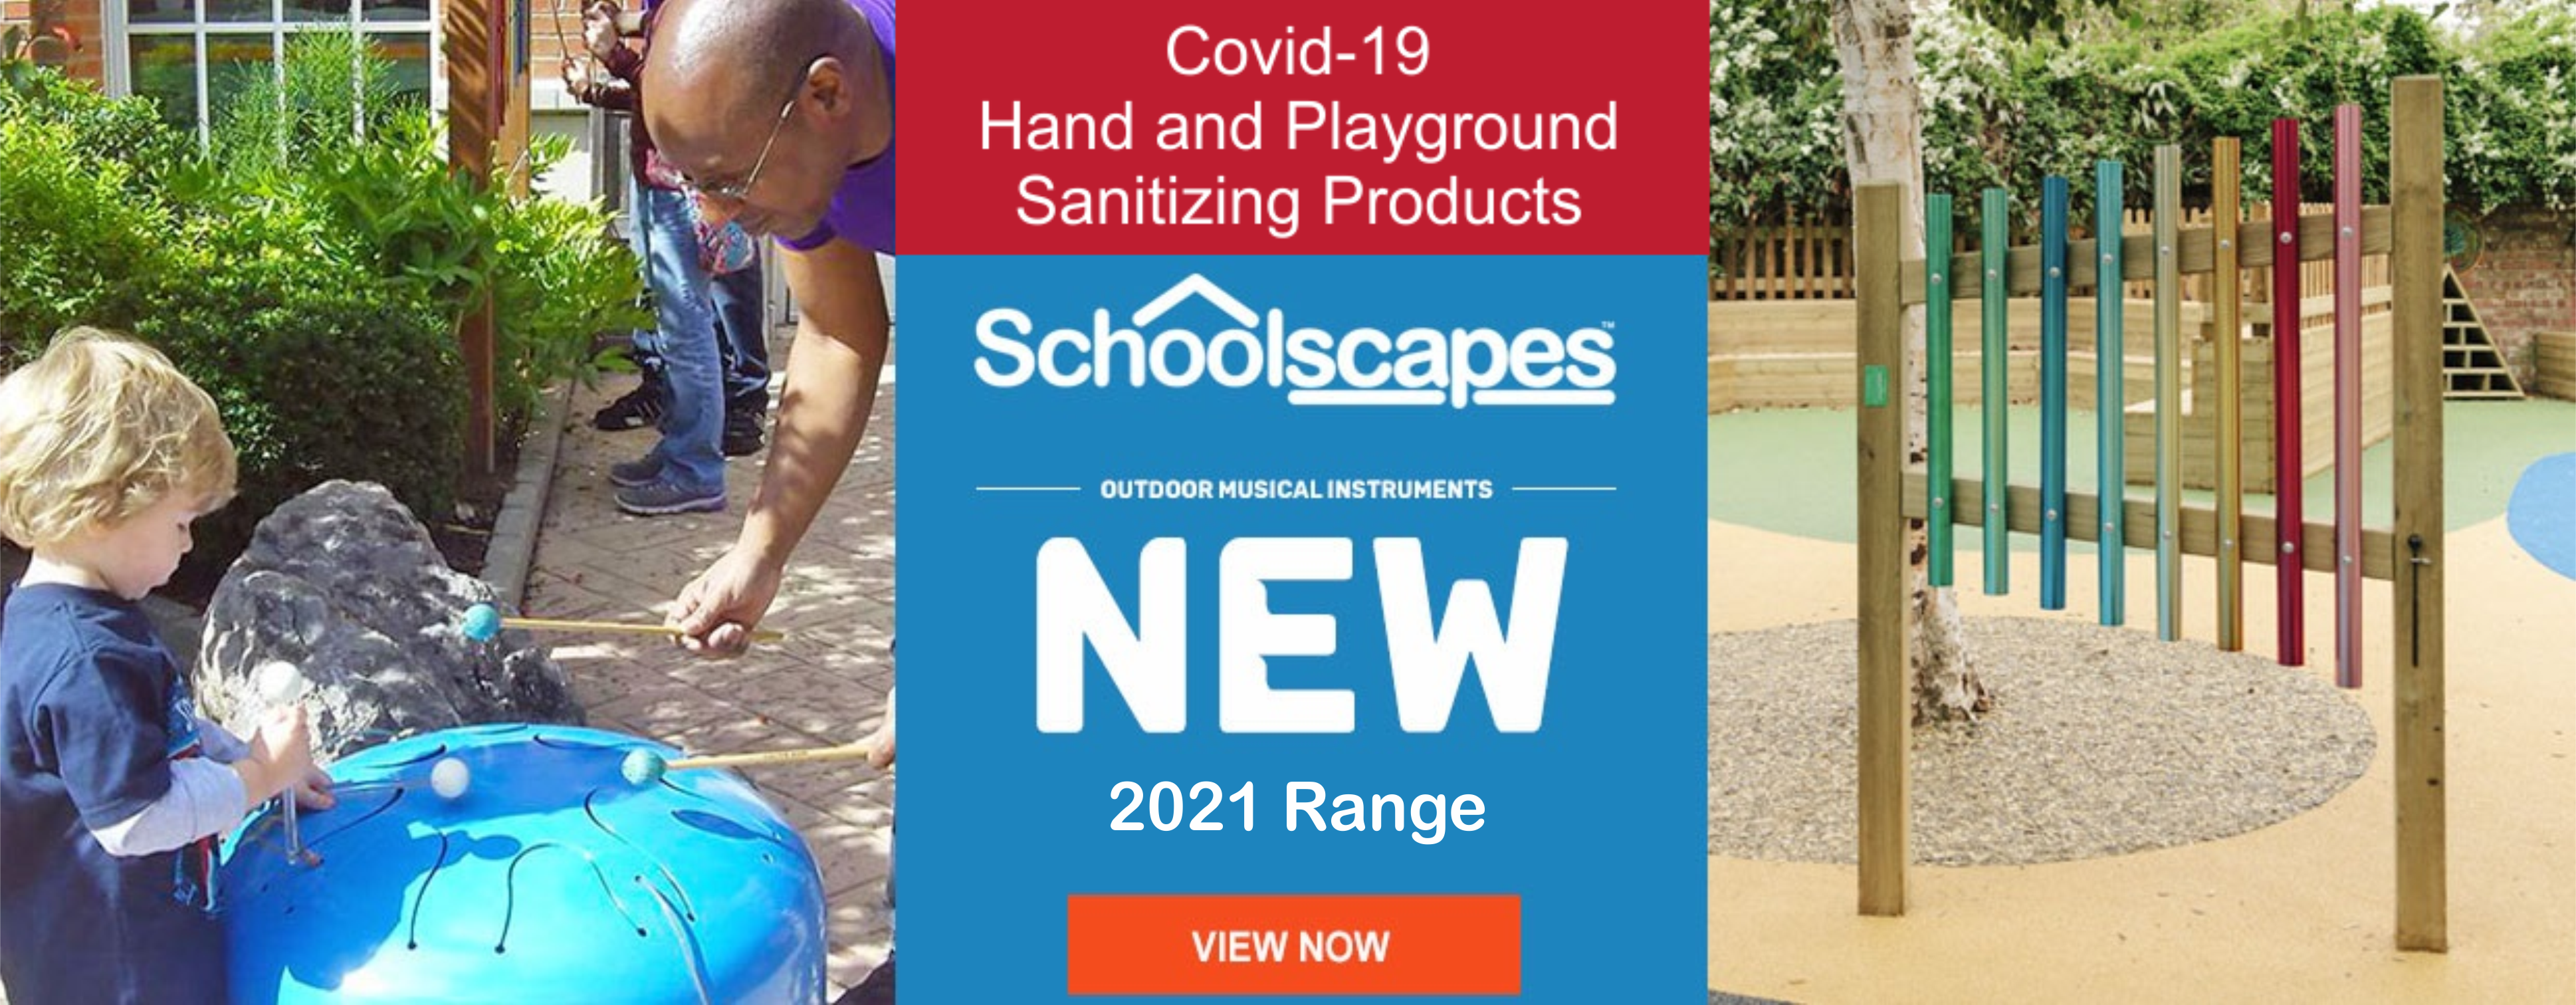 Schoolscapes 2021 range of outdoor musical instruments, play equipment and sanitizing products